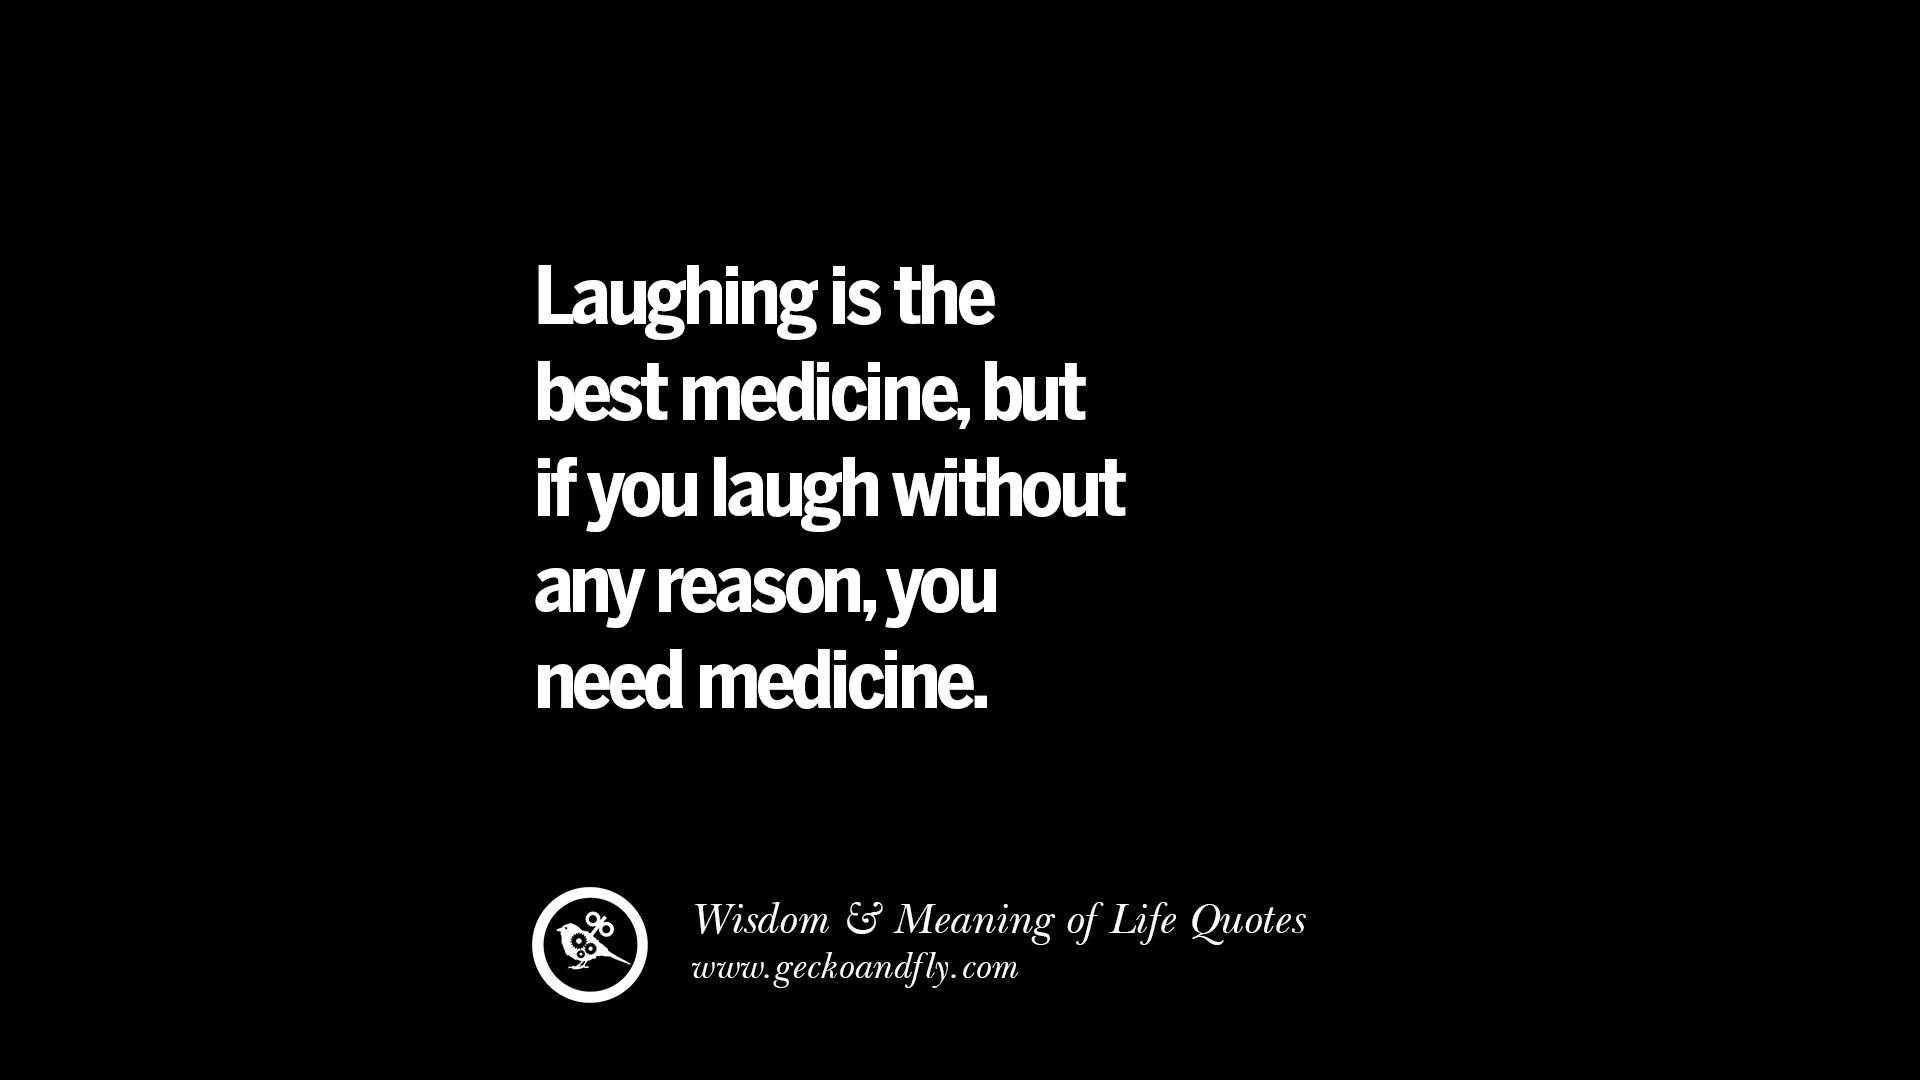 if you laugh without any reason, you need medicine. funny wise quotes ...